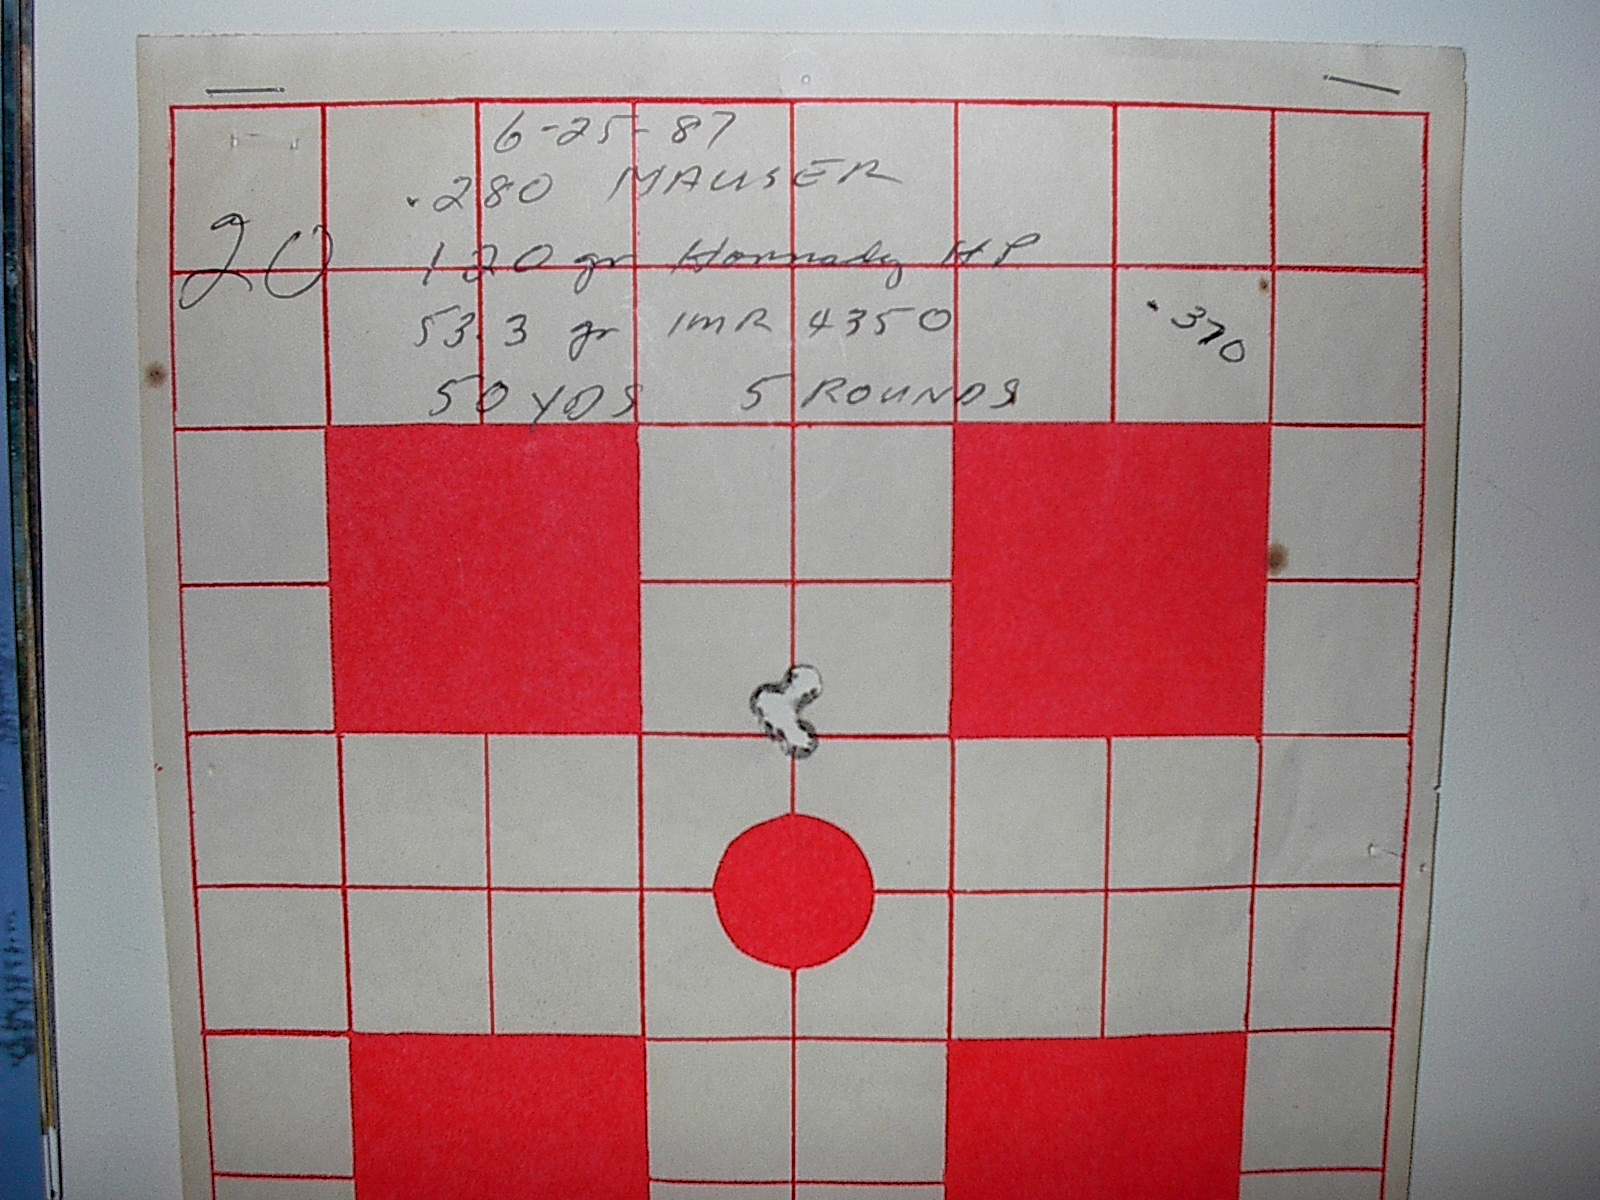 WHAT IS THE BEST WAY TO SIGHT A 300 WEATHERBY MAGNUM FOR